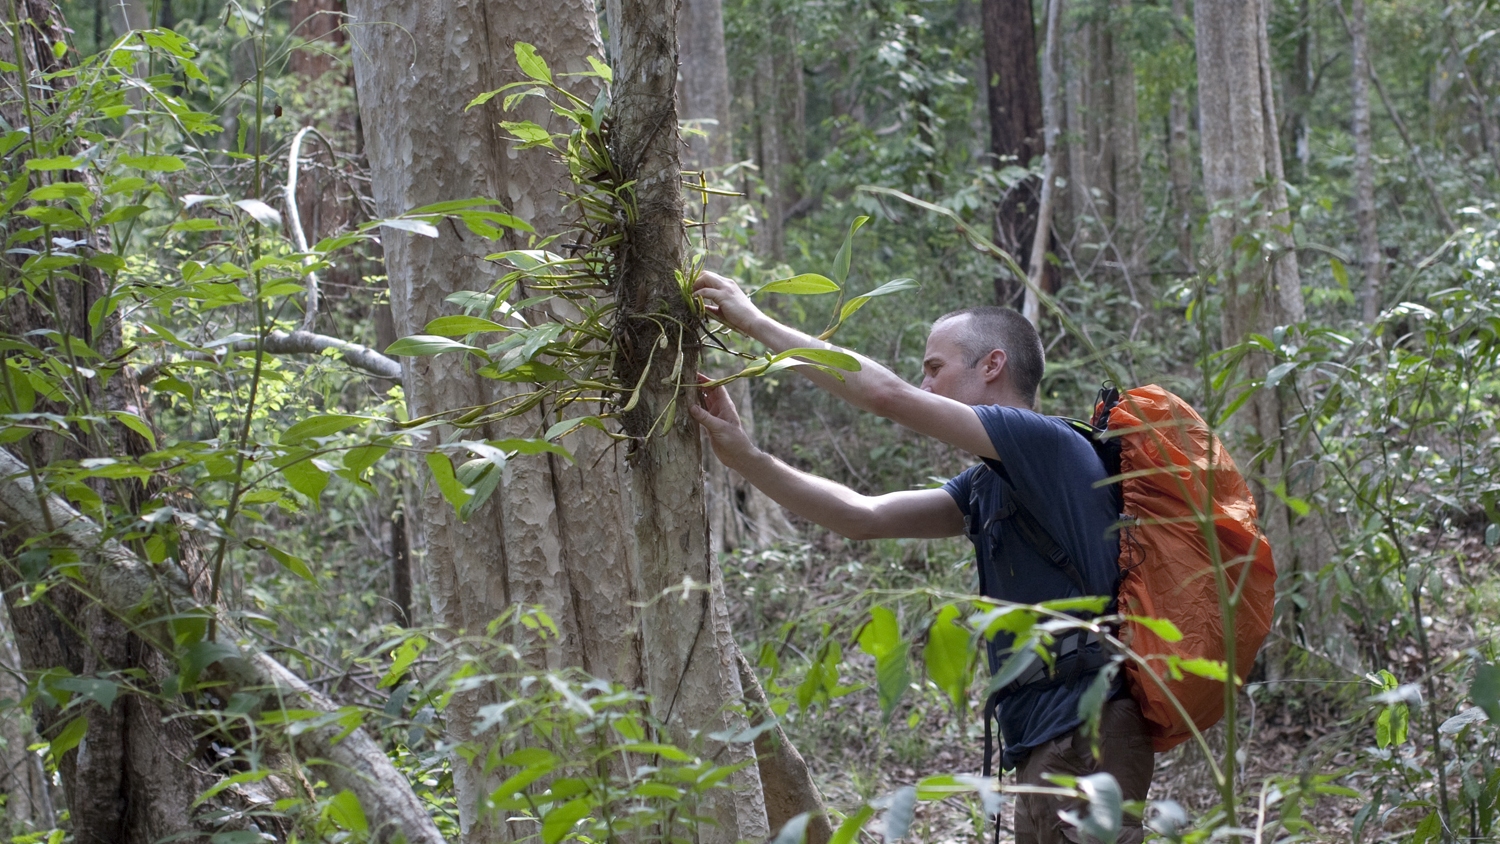 Cambodia: Collecting orchids (image supplied by Dr Andre Schuiteman)